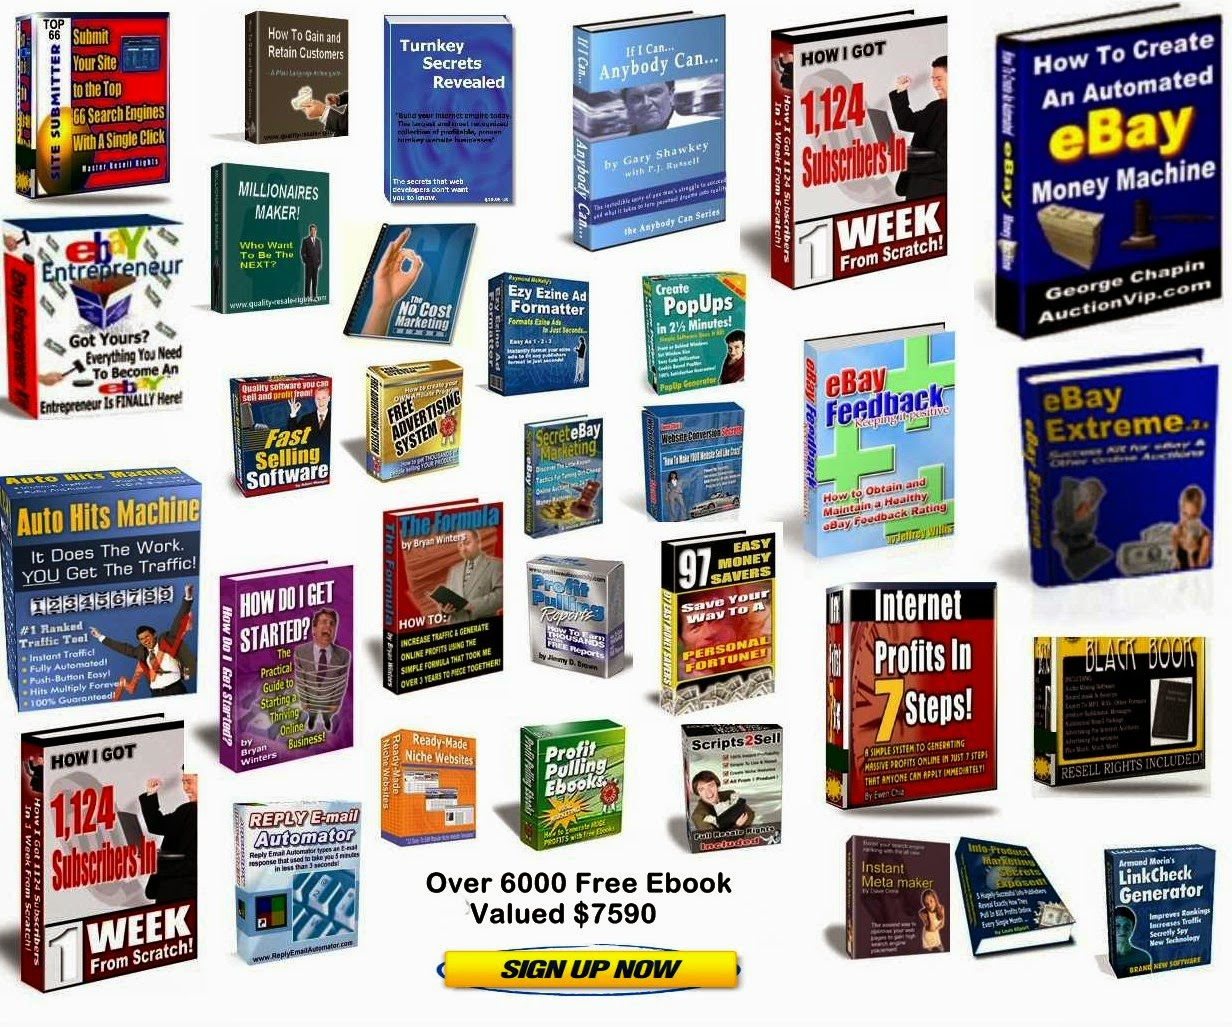 Your  Access To Millions Of Free Ebooks Online!